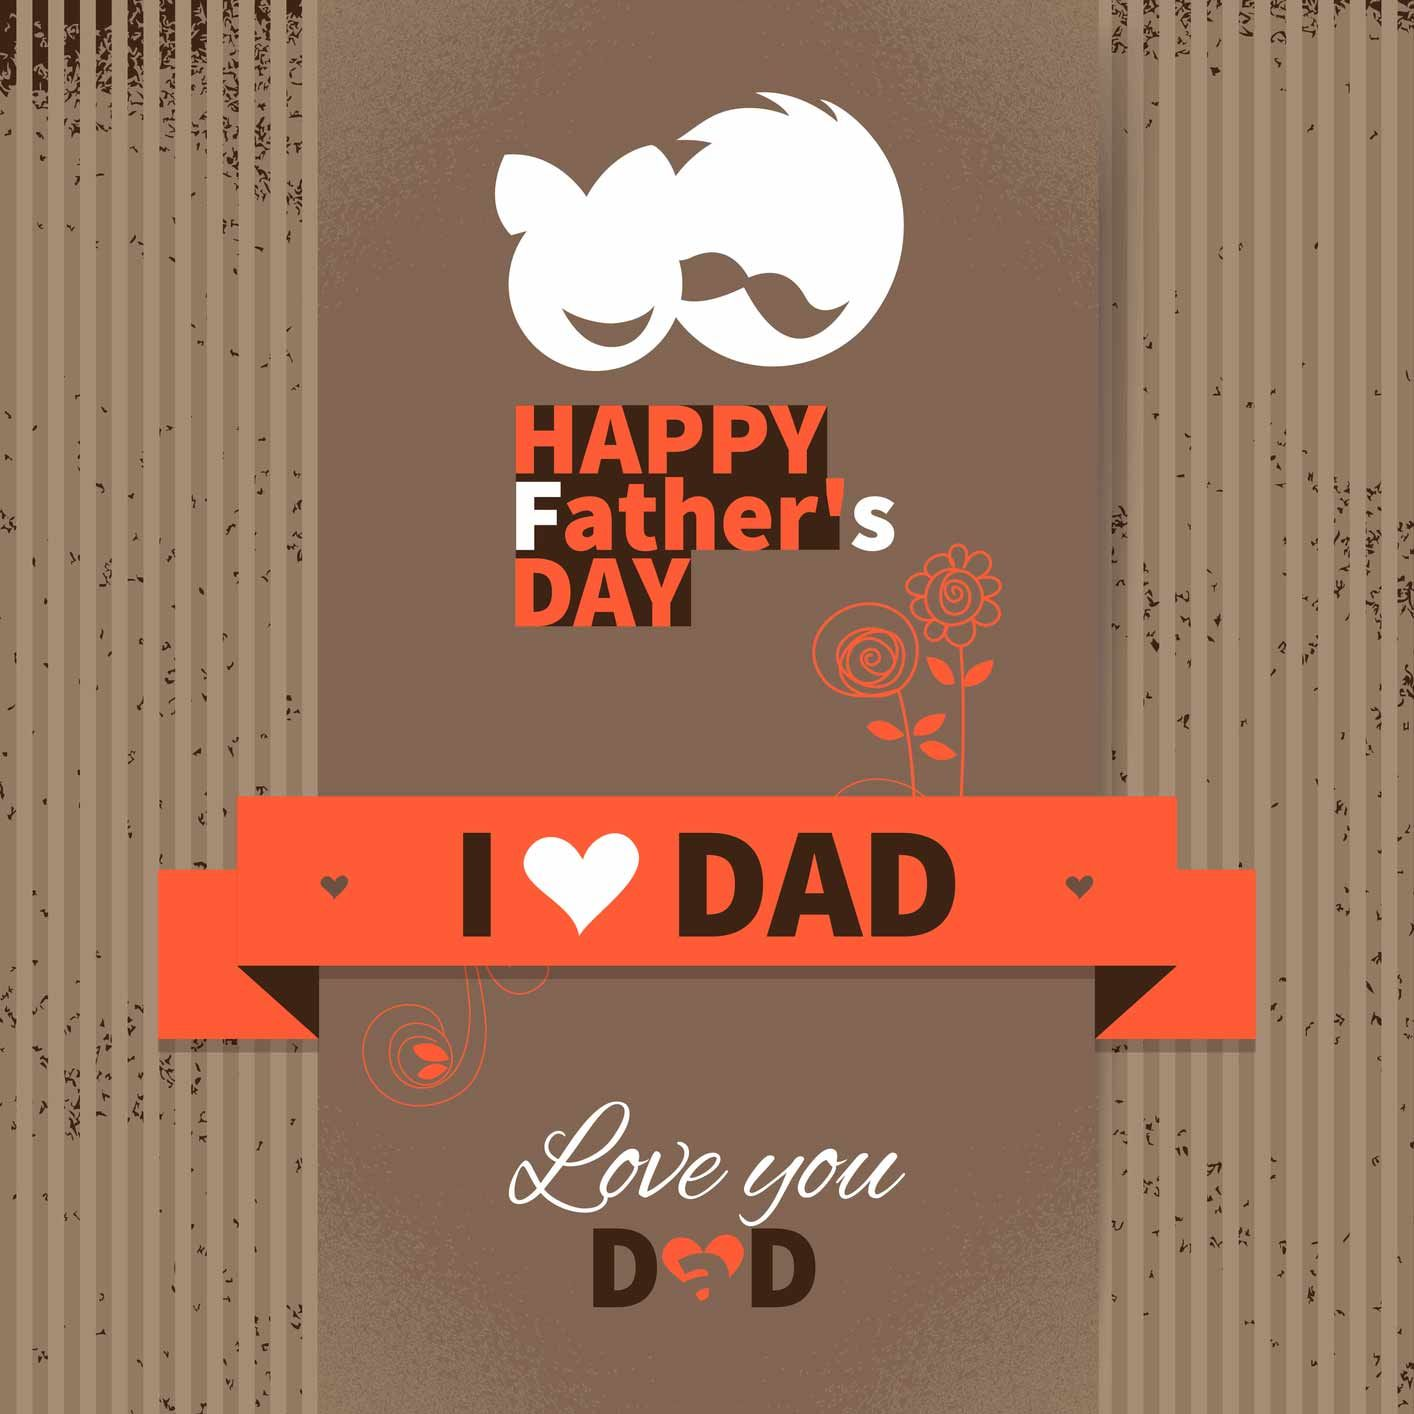 Fathers Love: Happy Father's Day, I Love Dad, Love You Dad Pictures